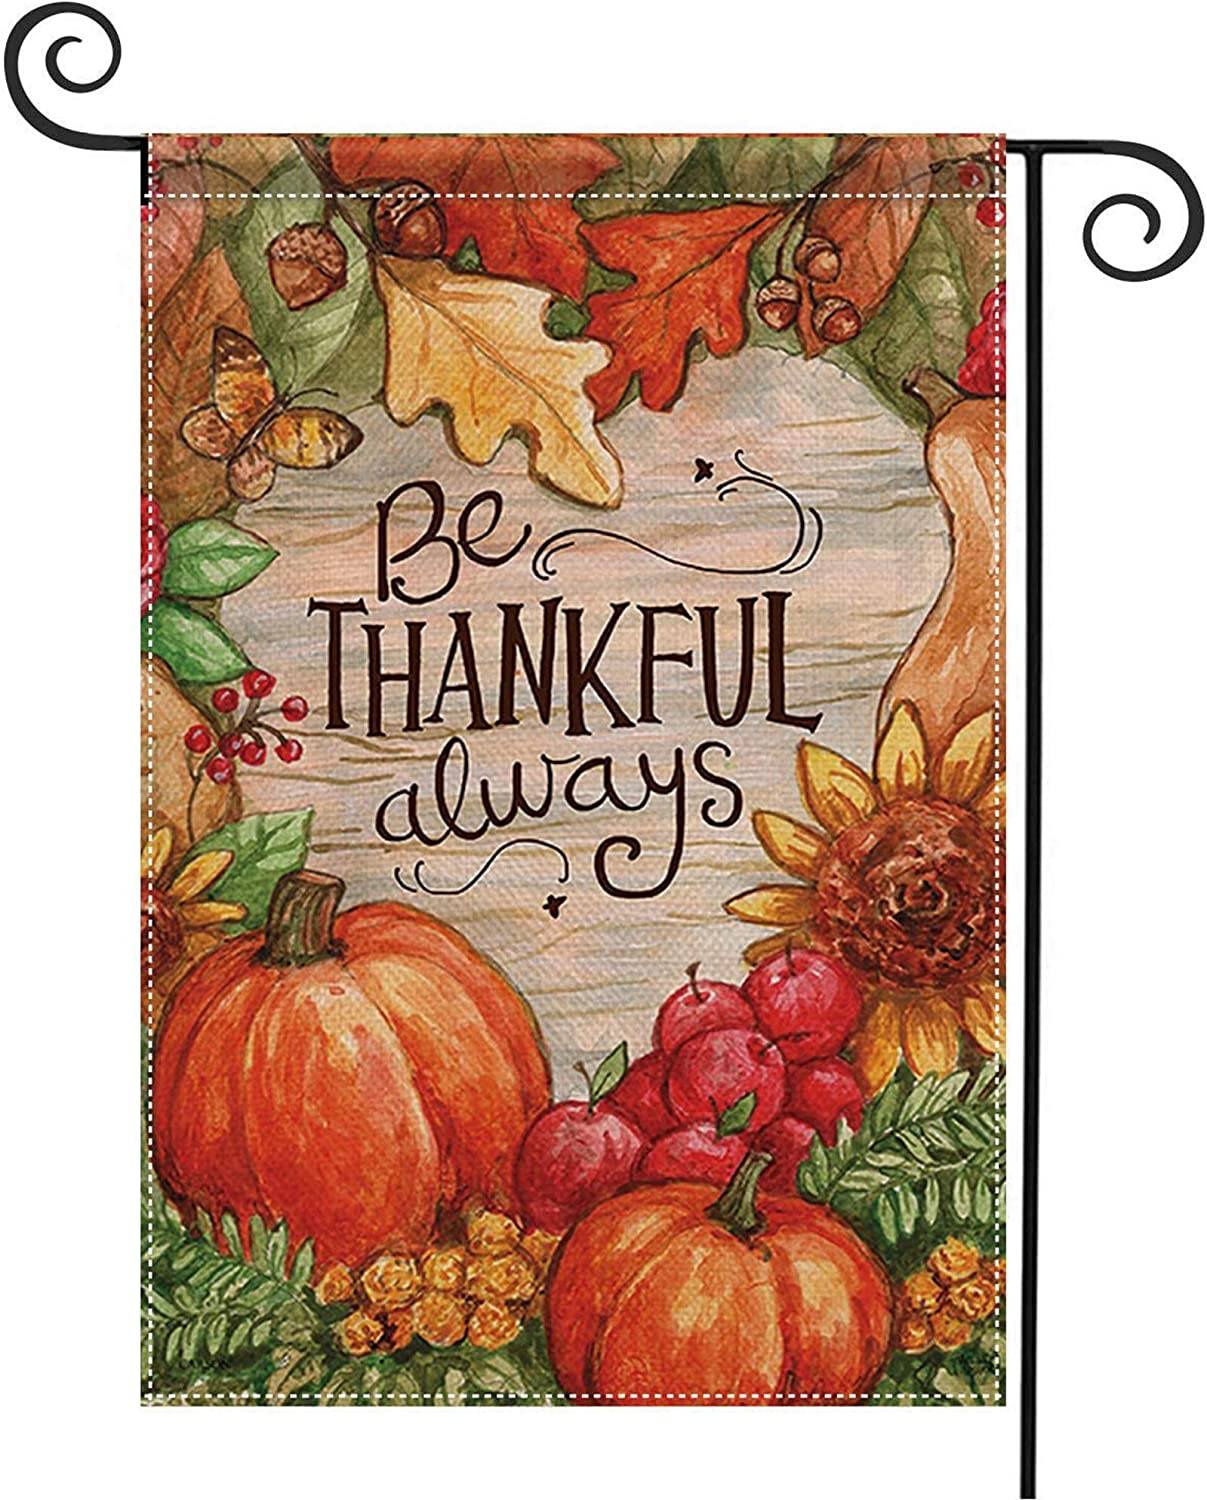 CHICHIC Fall Garden Flag Welcome Fall Flag Thanksgiving Yard Lawn Flags, Burlap Autumn Leaves Double Sized for Outside Thanksgiving Day Yard Outdoor Decorations, 12.5 x 18.5 Inch, Seasonal Pumpkin